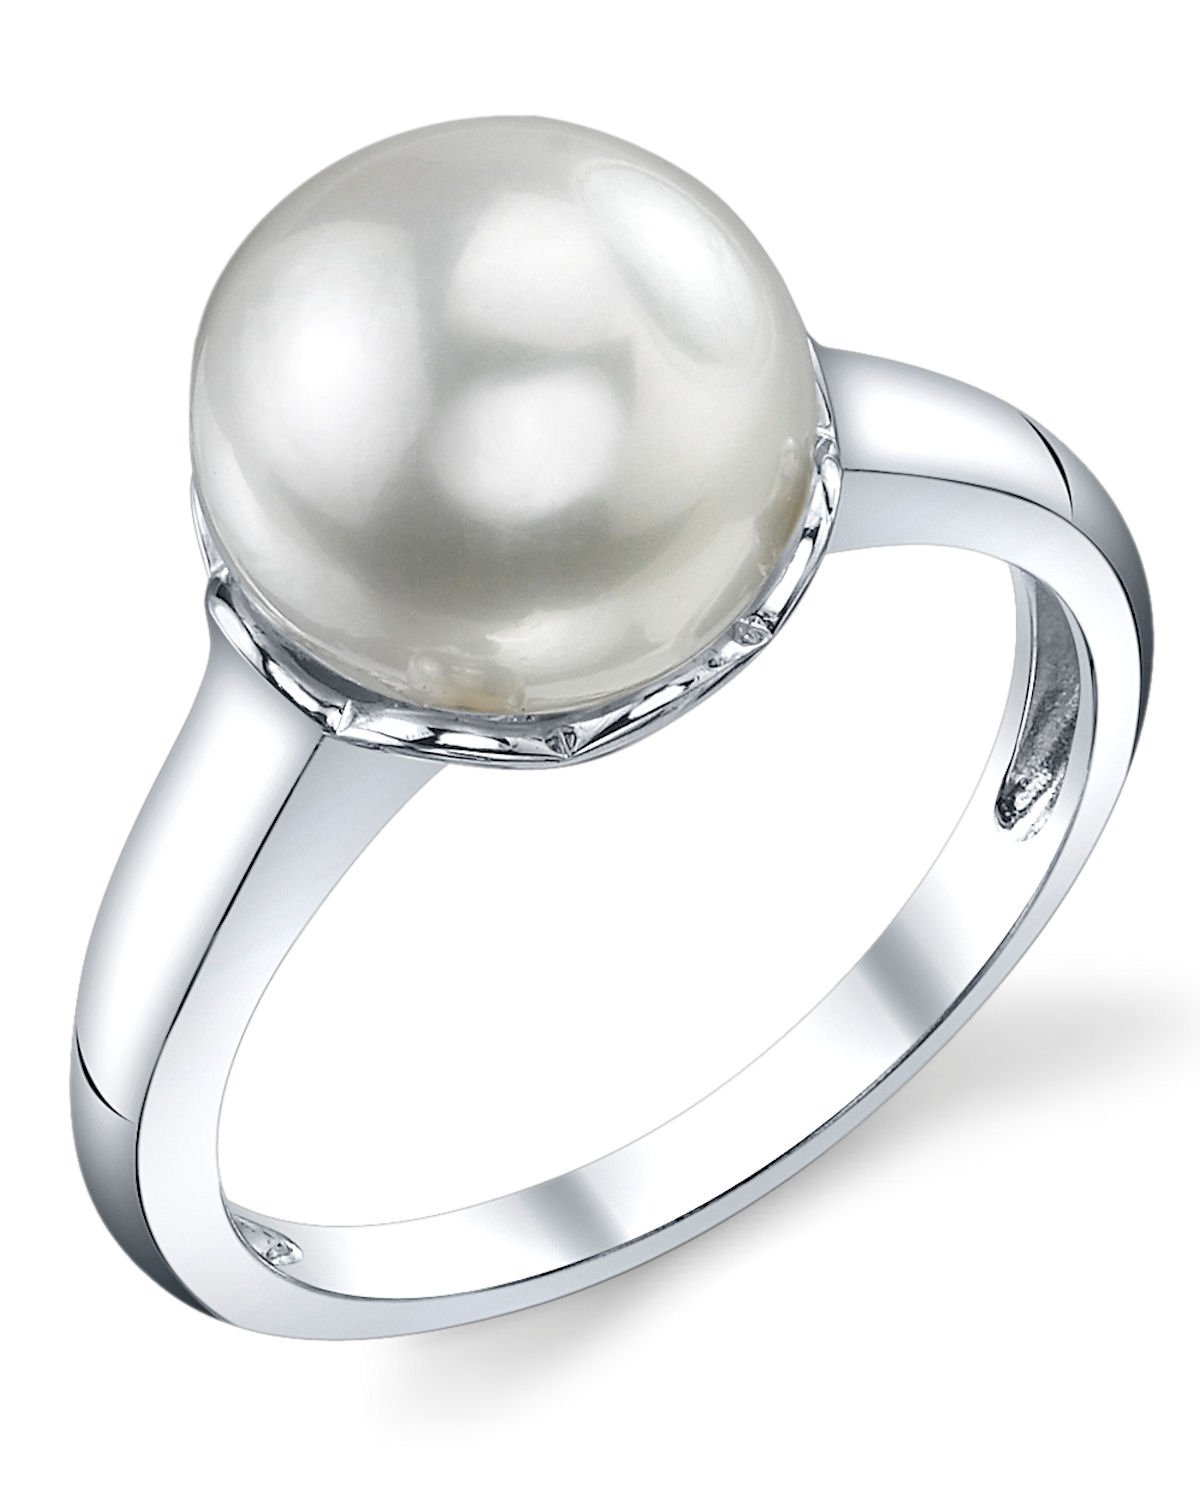 10mm White Freshwater Cultured Pearl Laurel Ring 6.5